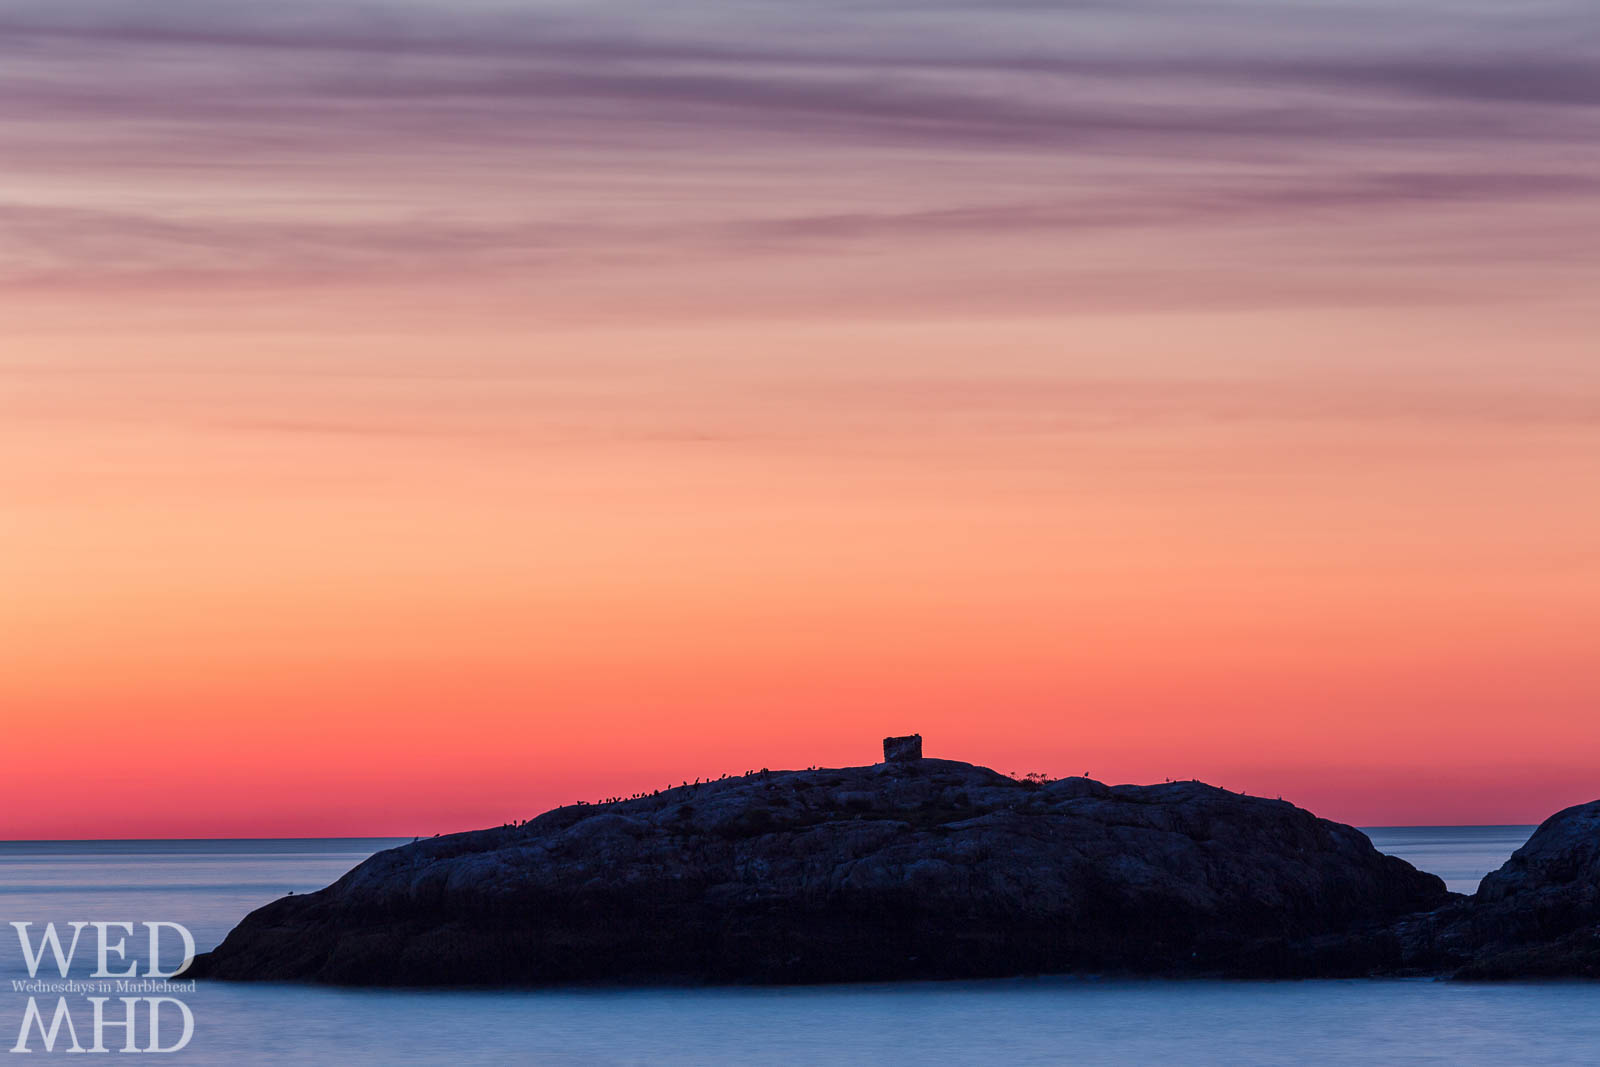 Dawn colors and smooth waters surround Marblehead Rock in this long exposure image